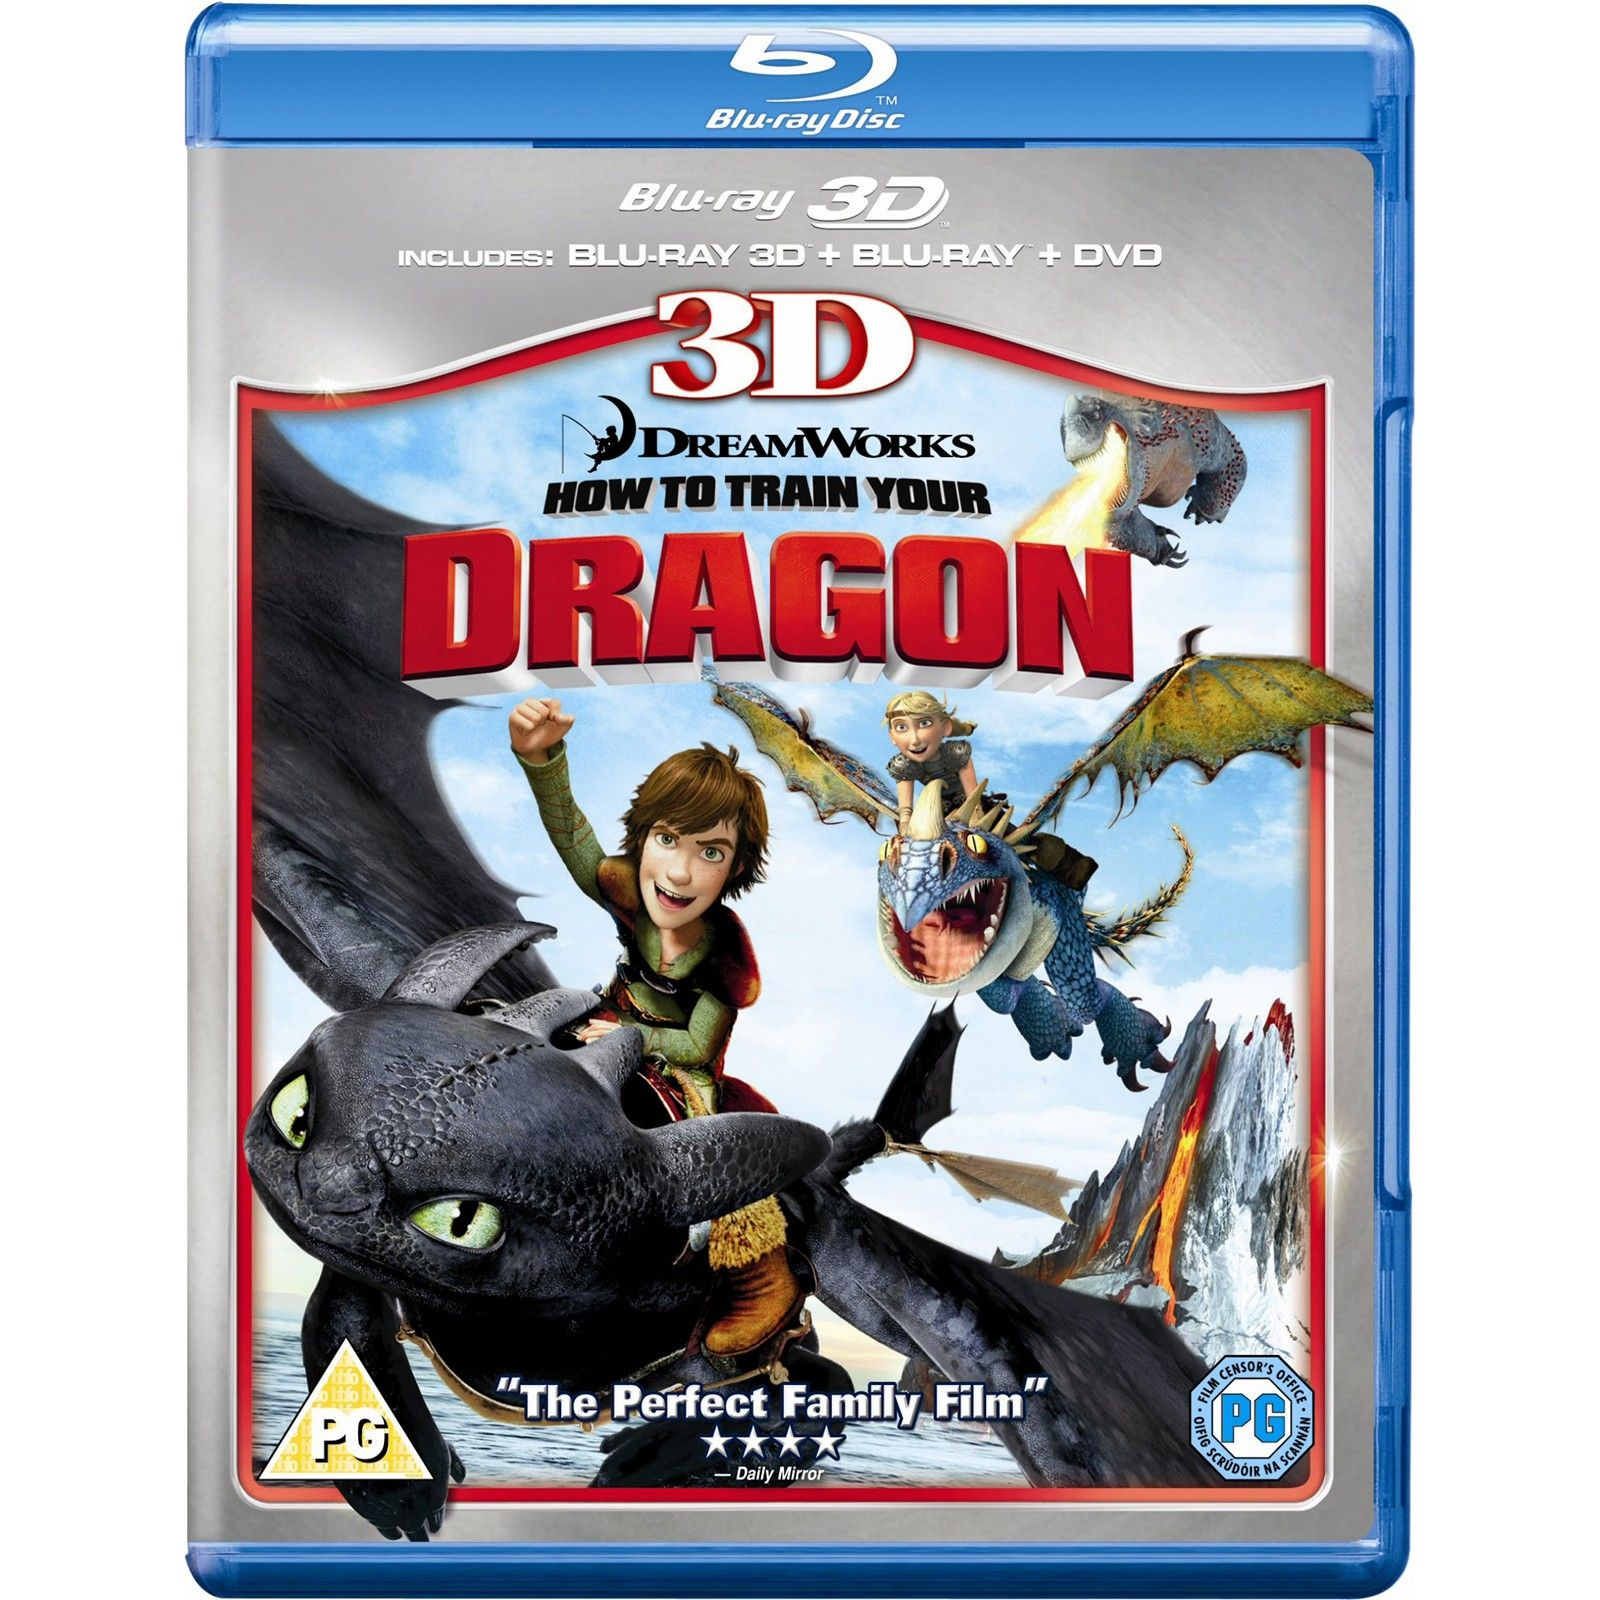 Dragon Trainer [3D] (2010) Full Blu-ray ISO AVC TrueHD DD5.1 37Gb